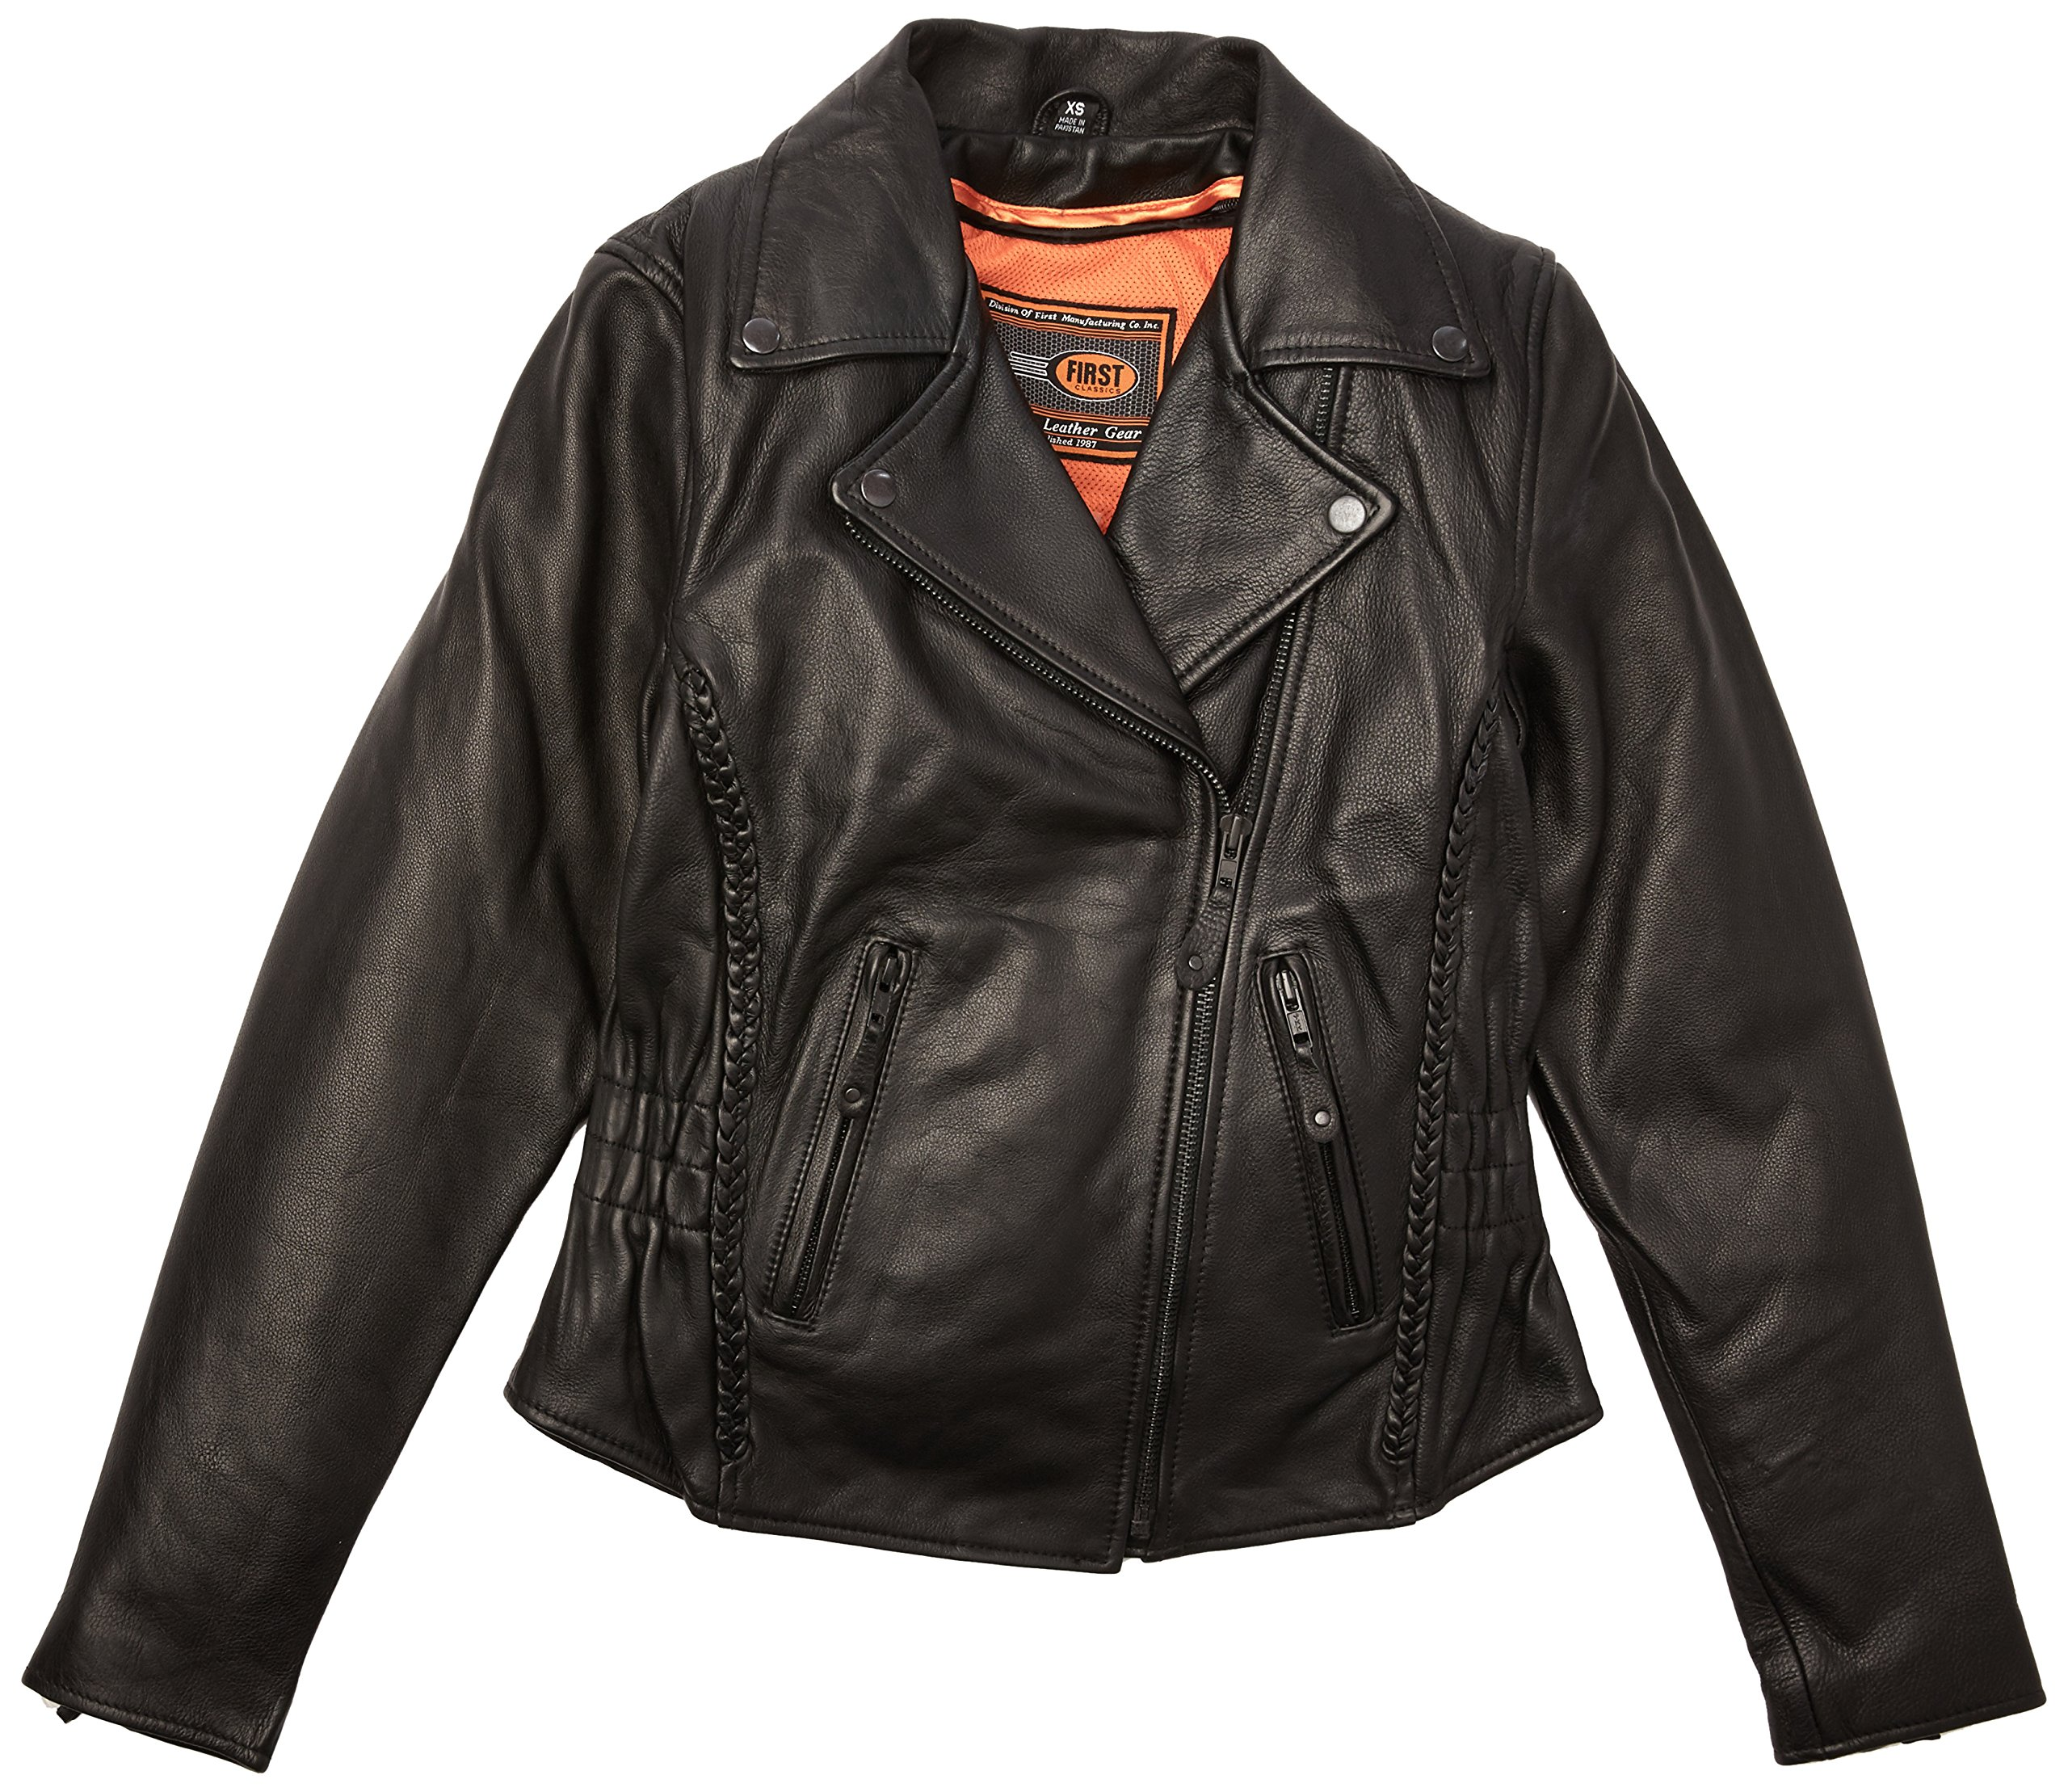 First Manufacturing Women's Blacked Out Hourglass Motorcycle Jacket (Black, X-Small) by First Manufacturing